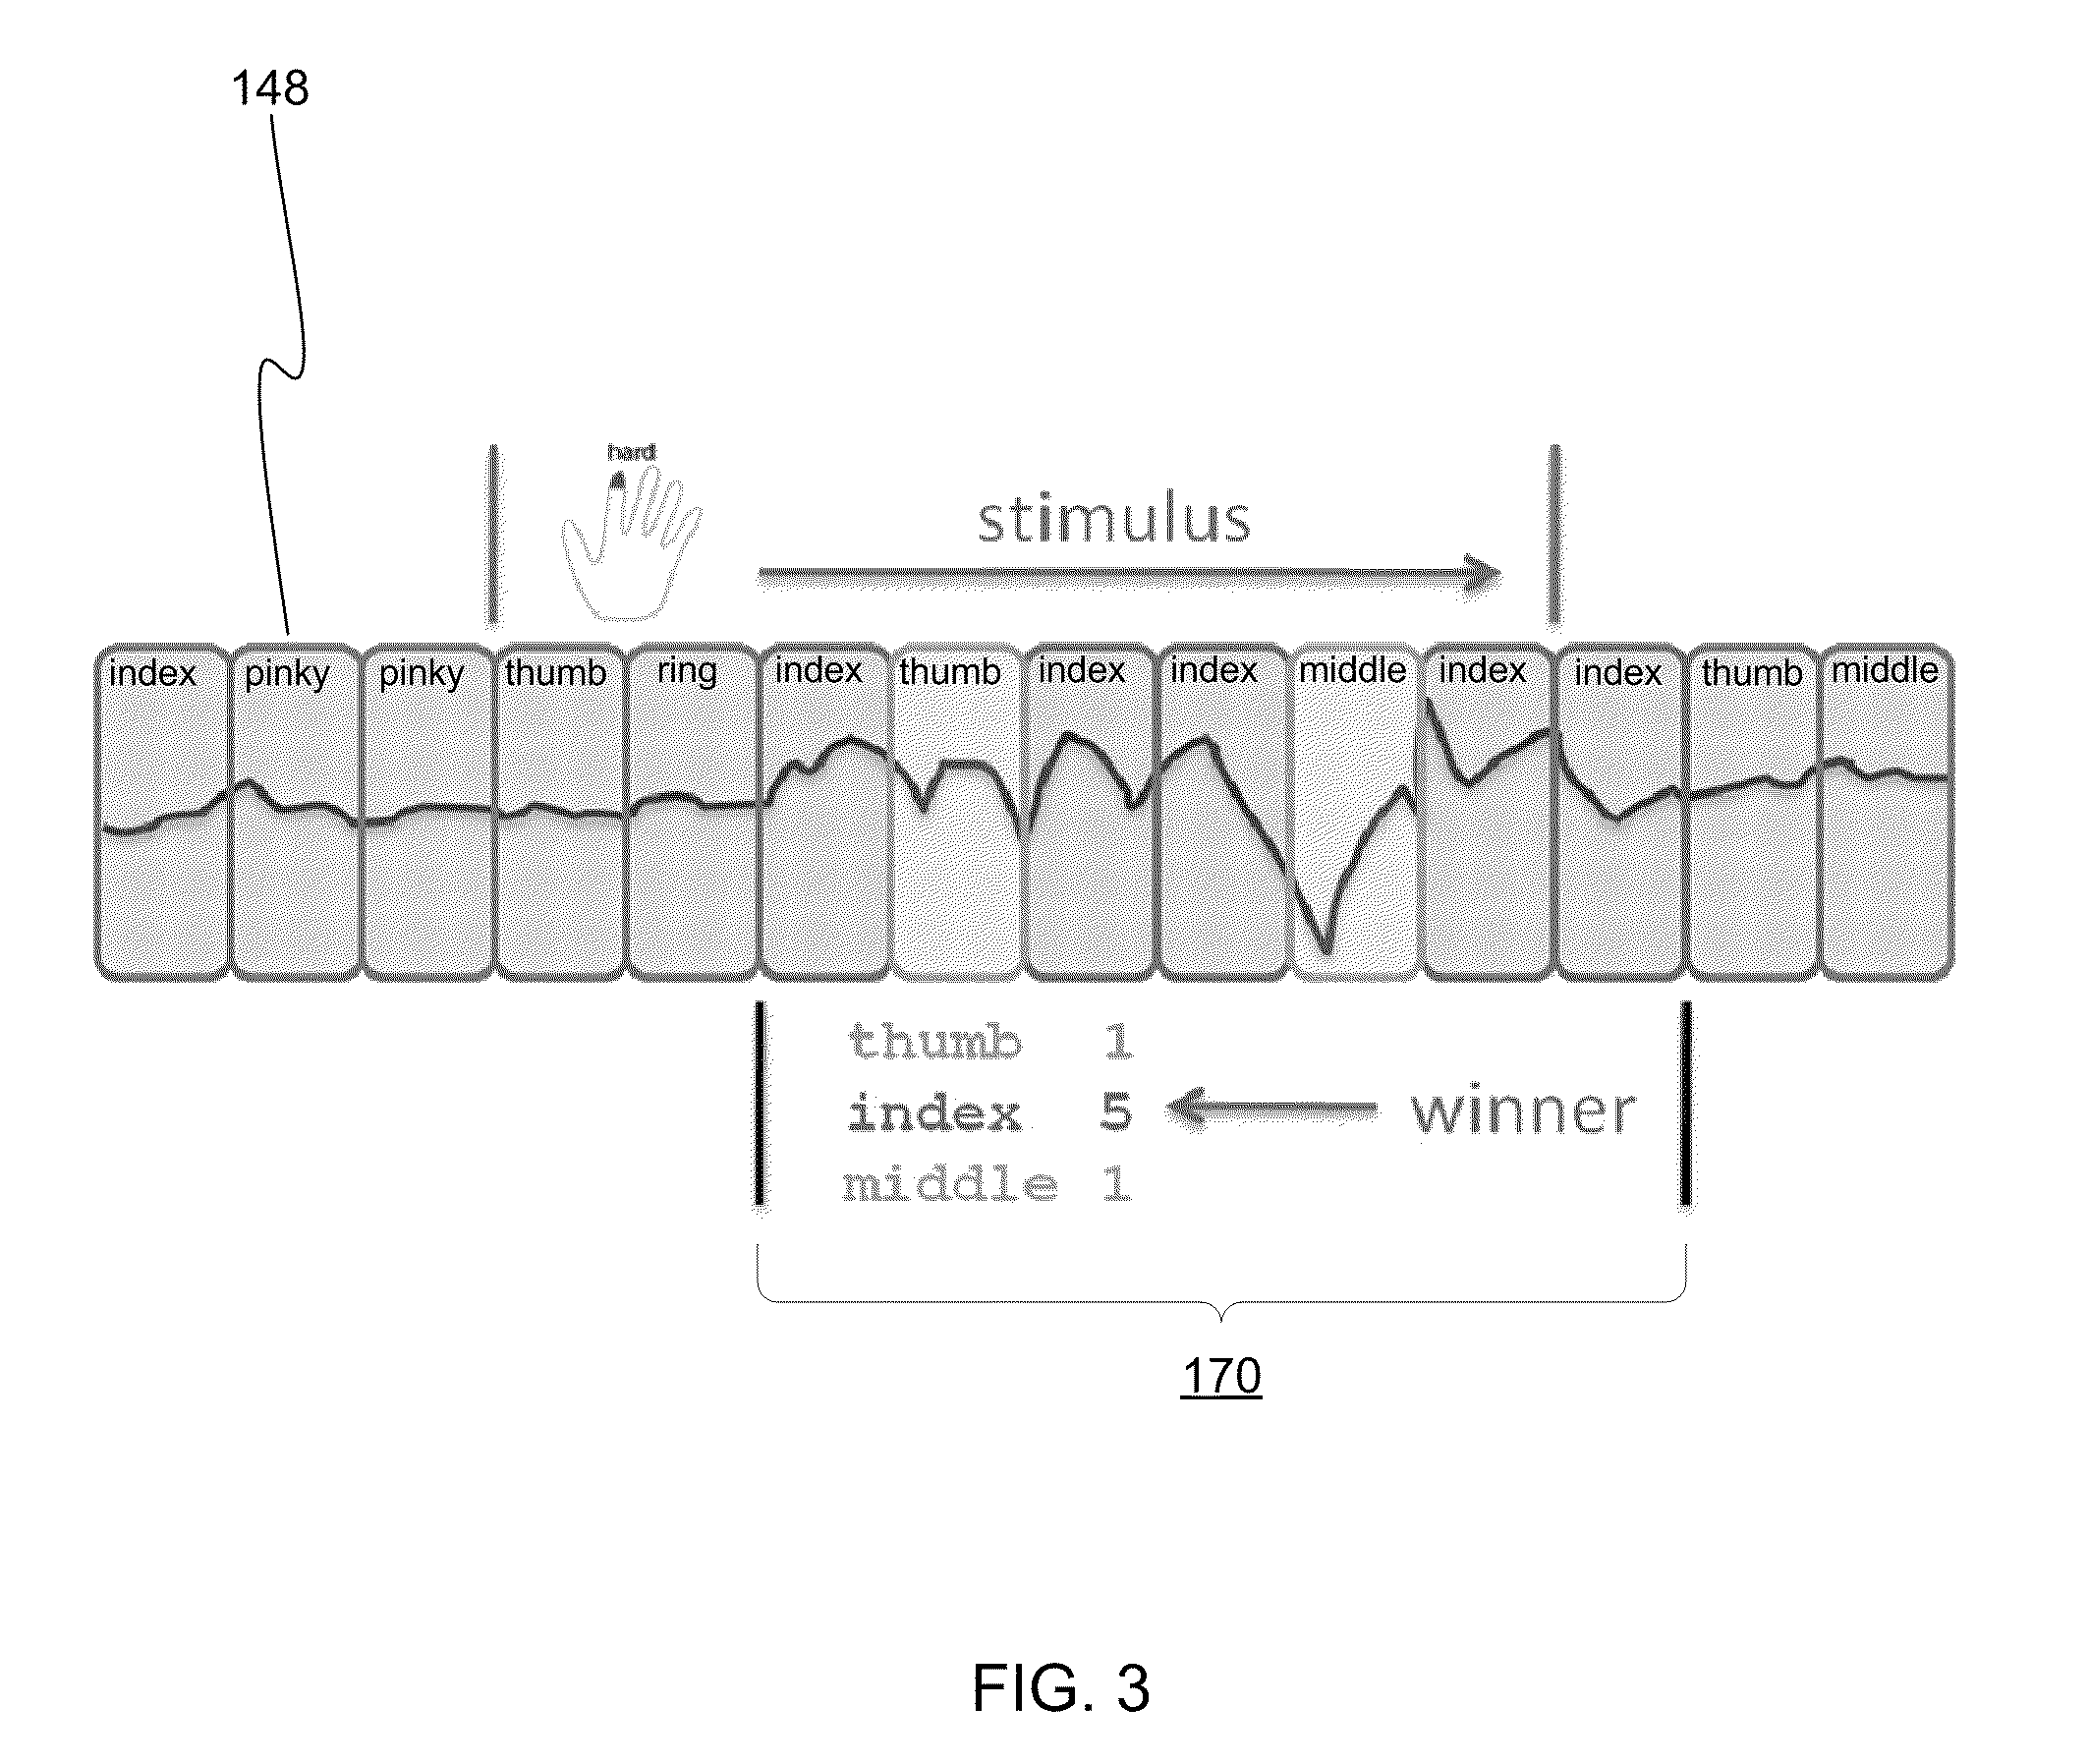 Us8447704b2 Recognizing Gestures From Forearm Emg Signals Google Figure 5 Schematic Diagram Of The Electromyography Detecting Patents